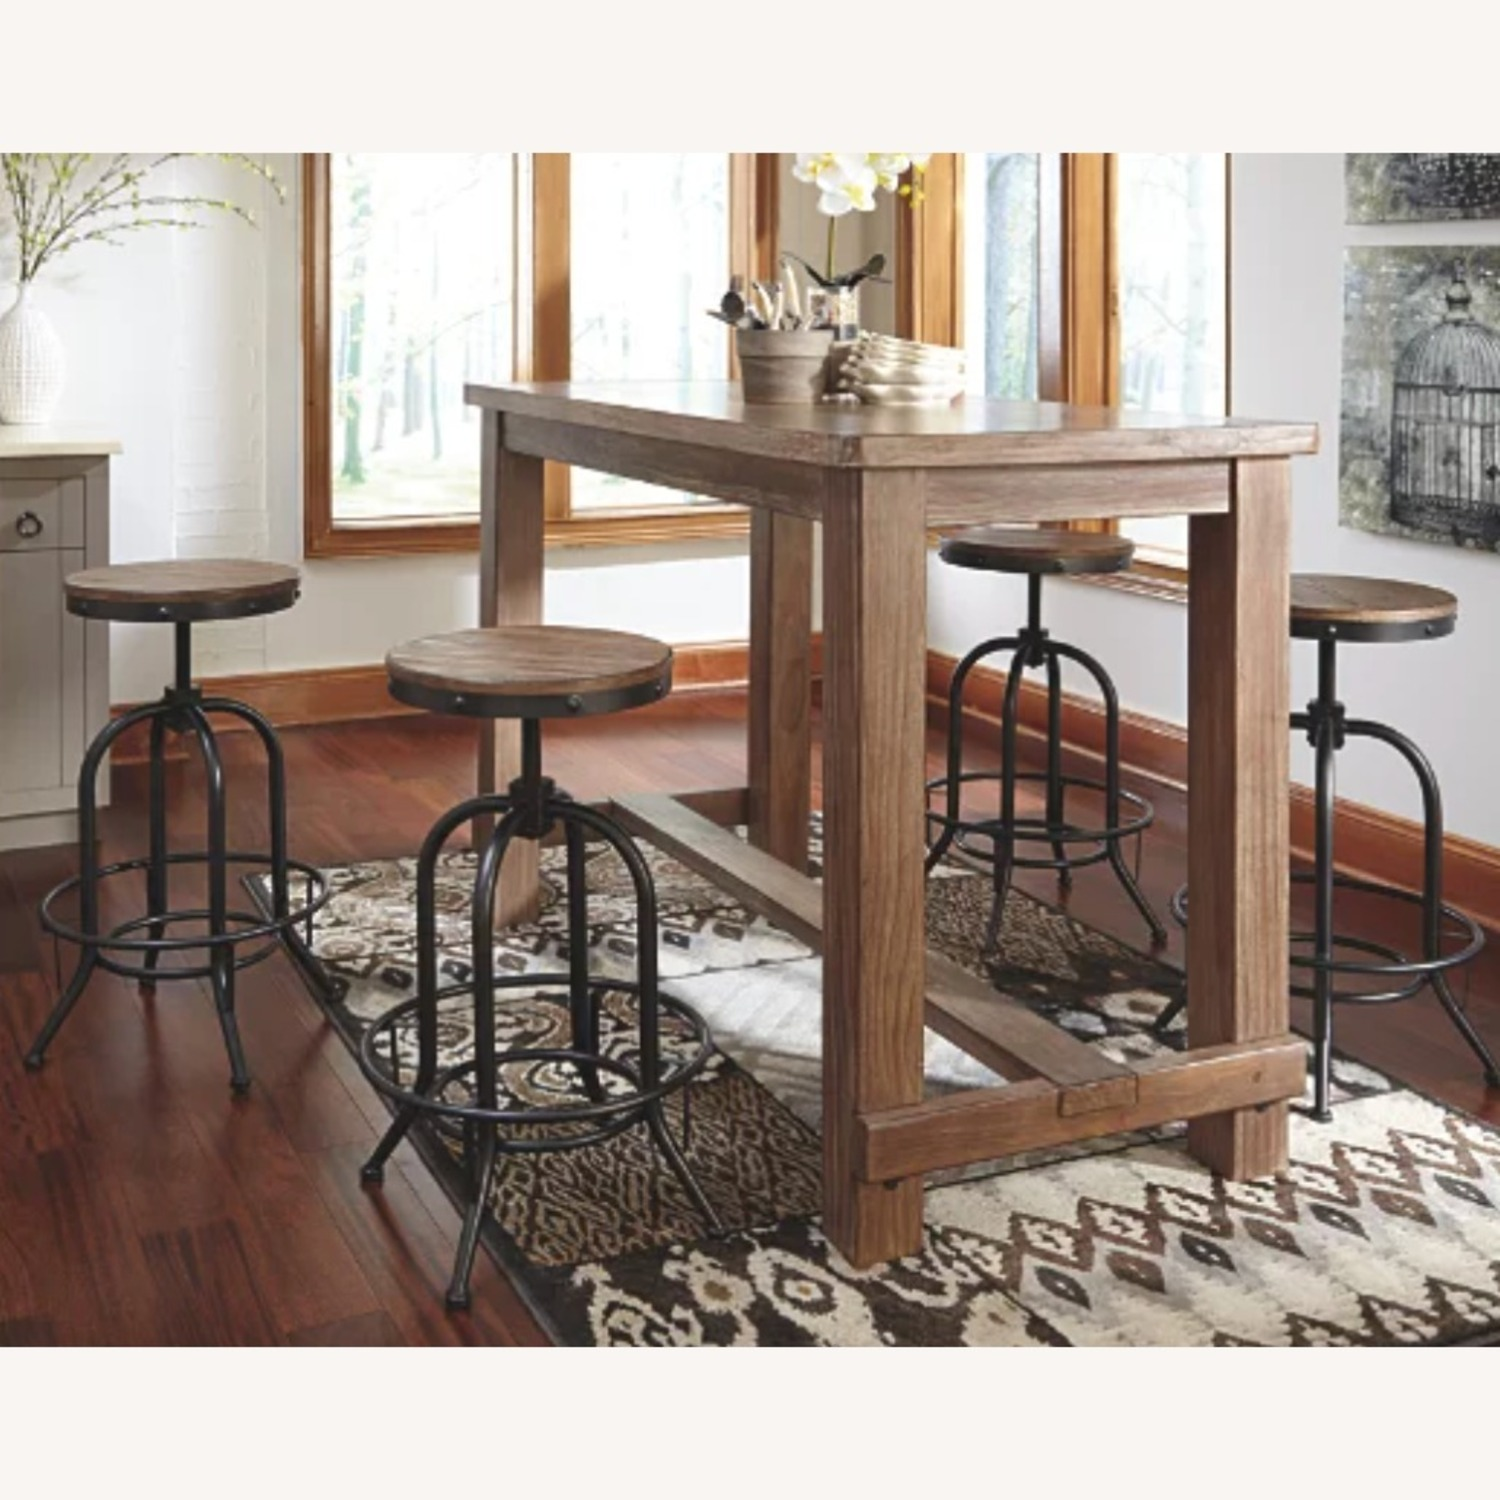 Ashley Furniture Dining Room Bar Table and Bar Stools (4) - image-1